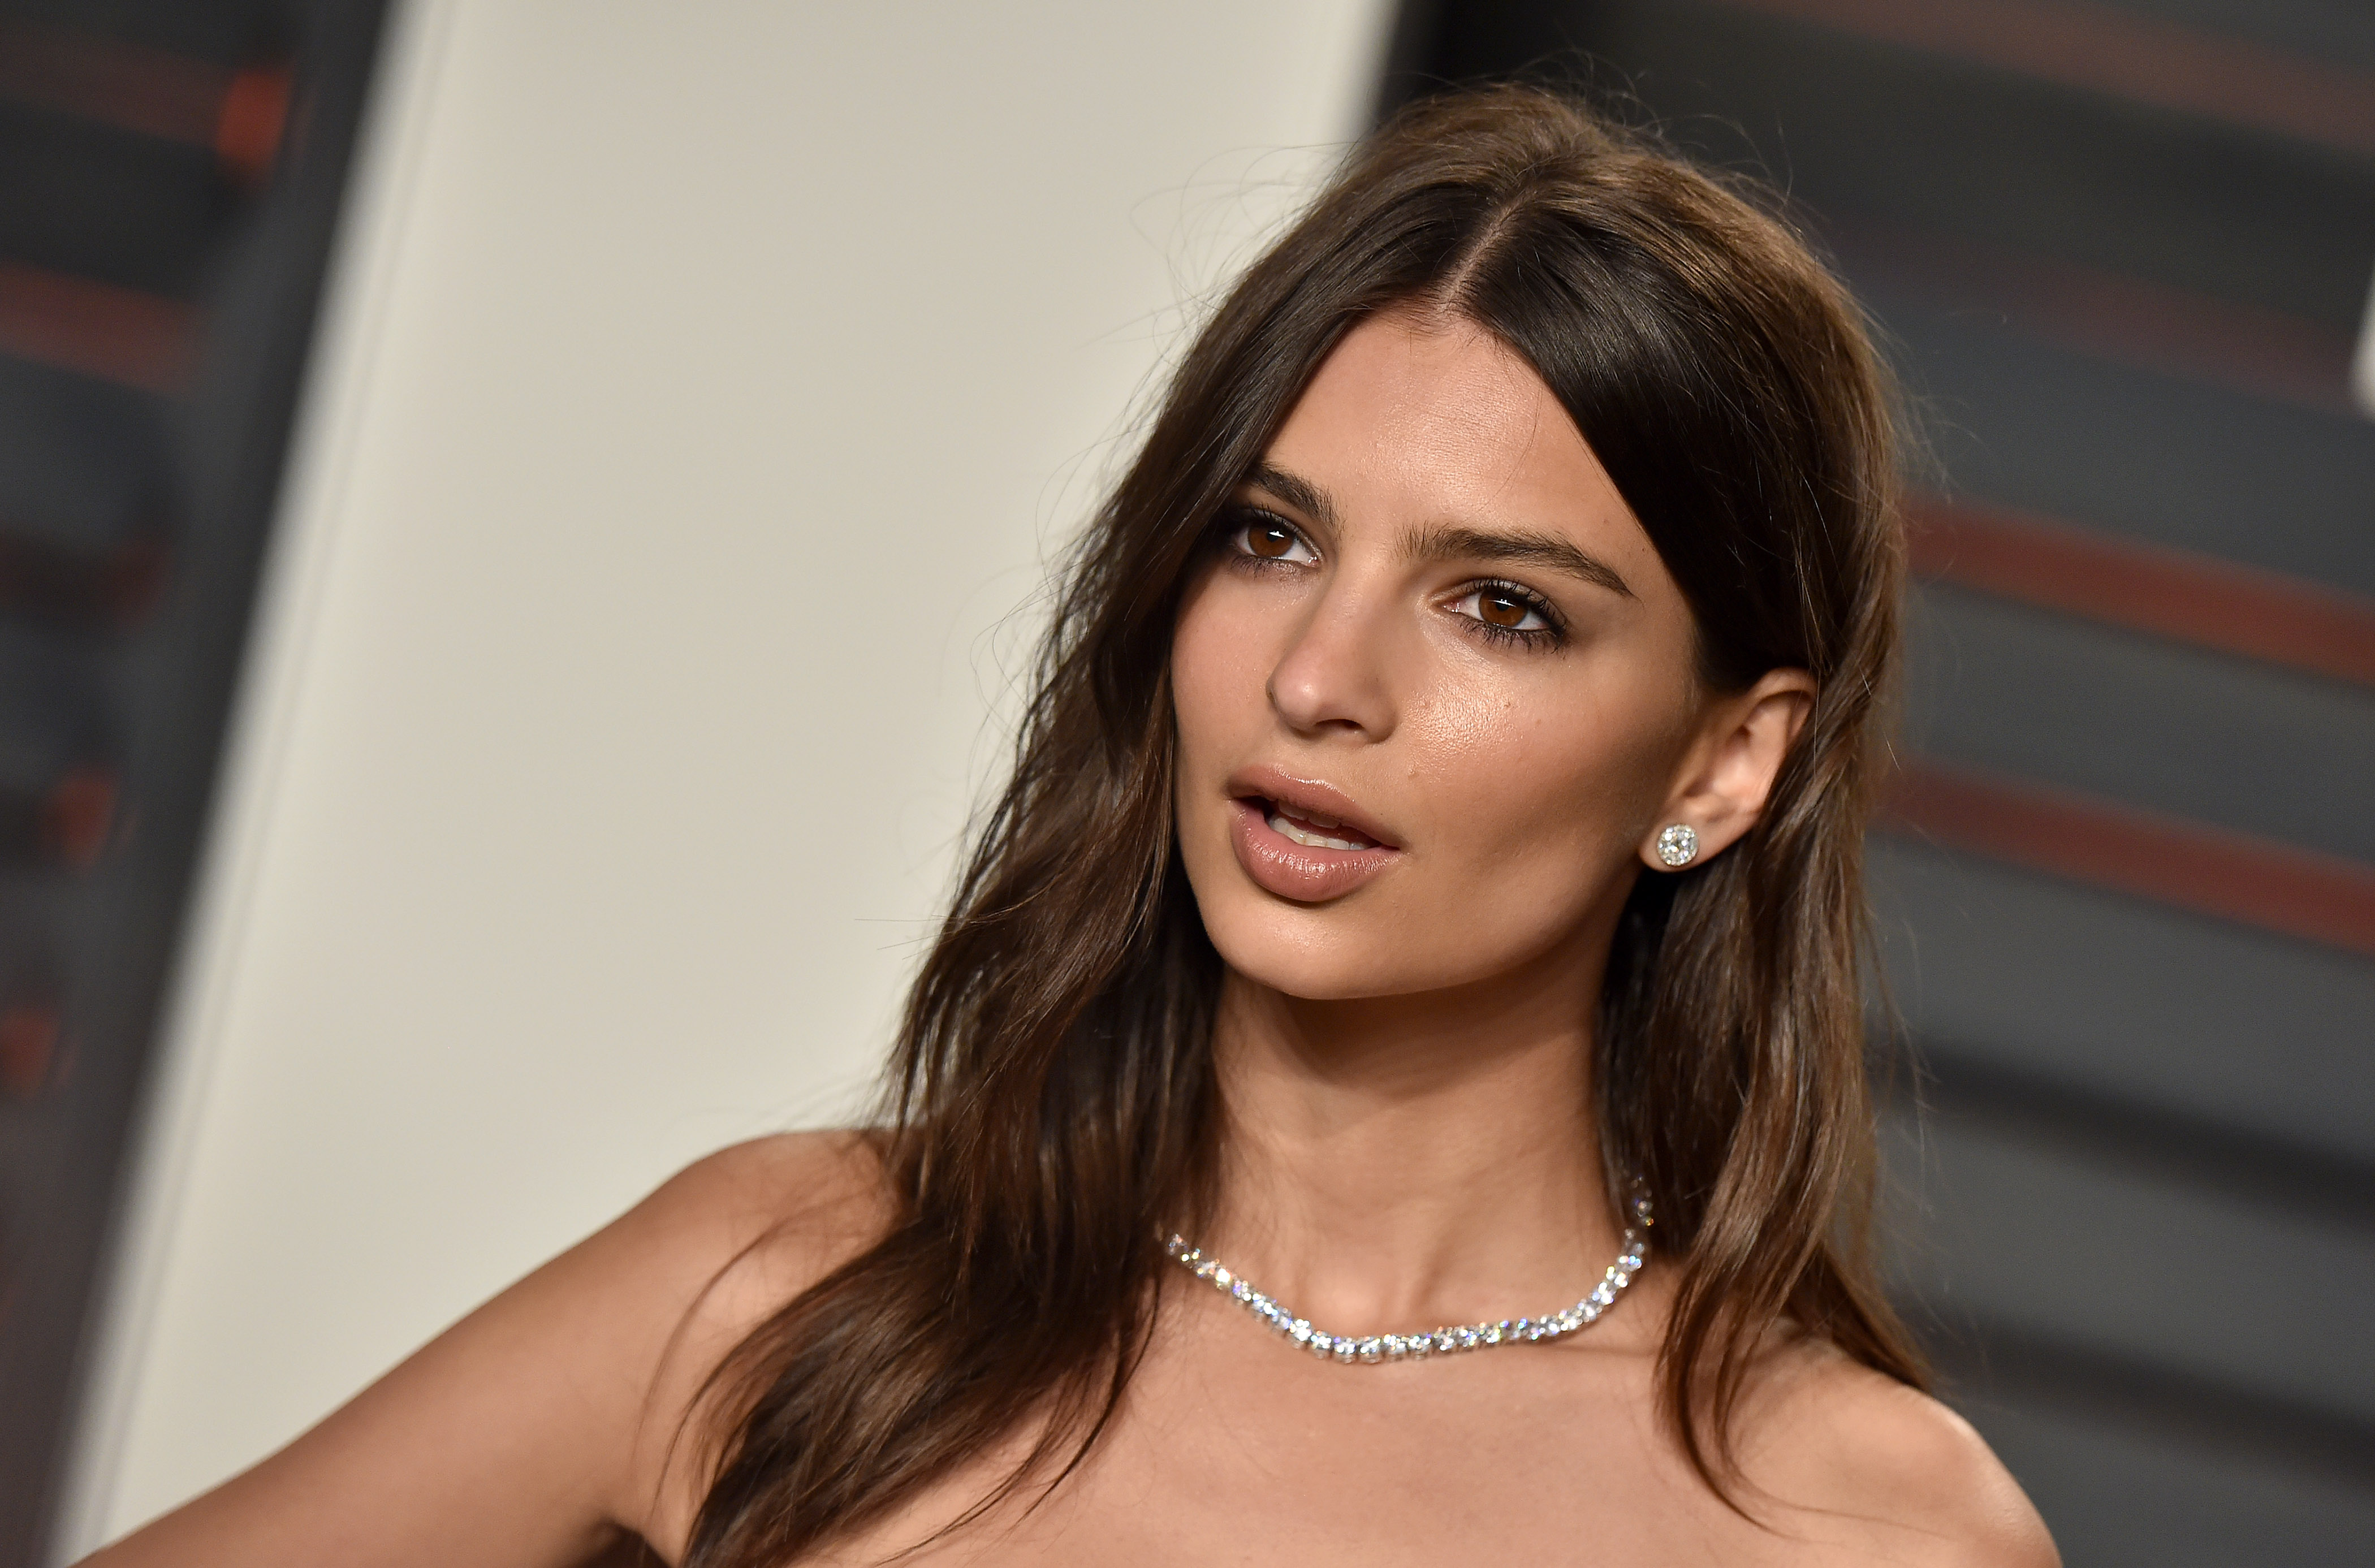 Model Emily Ratajkowski arrives at the 2016 Vanity Fair Oscar Party Hosted By Graydon Carter at Wallis Annenberg Center for the Performing Arts on February 28, 2016 in Beverly Hills, California.